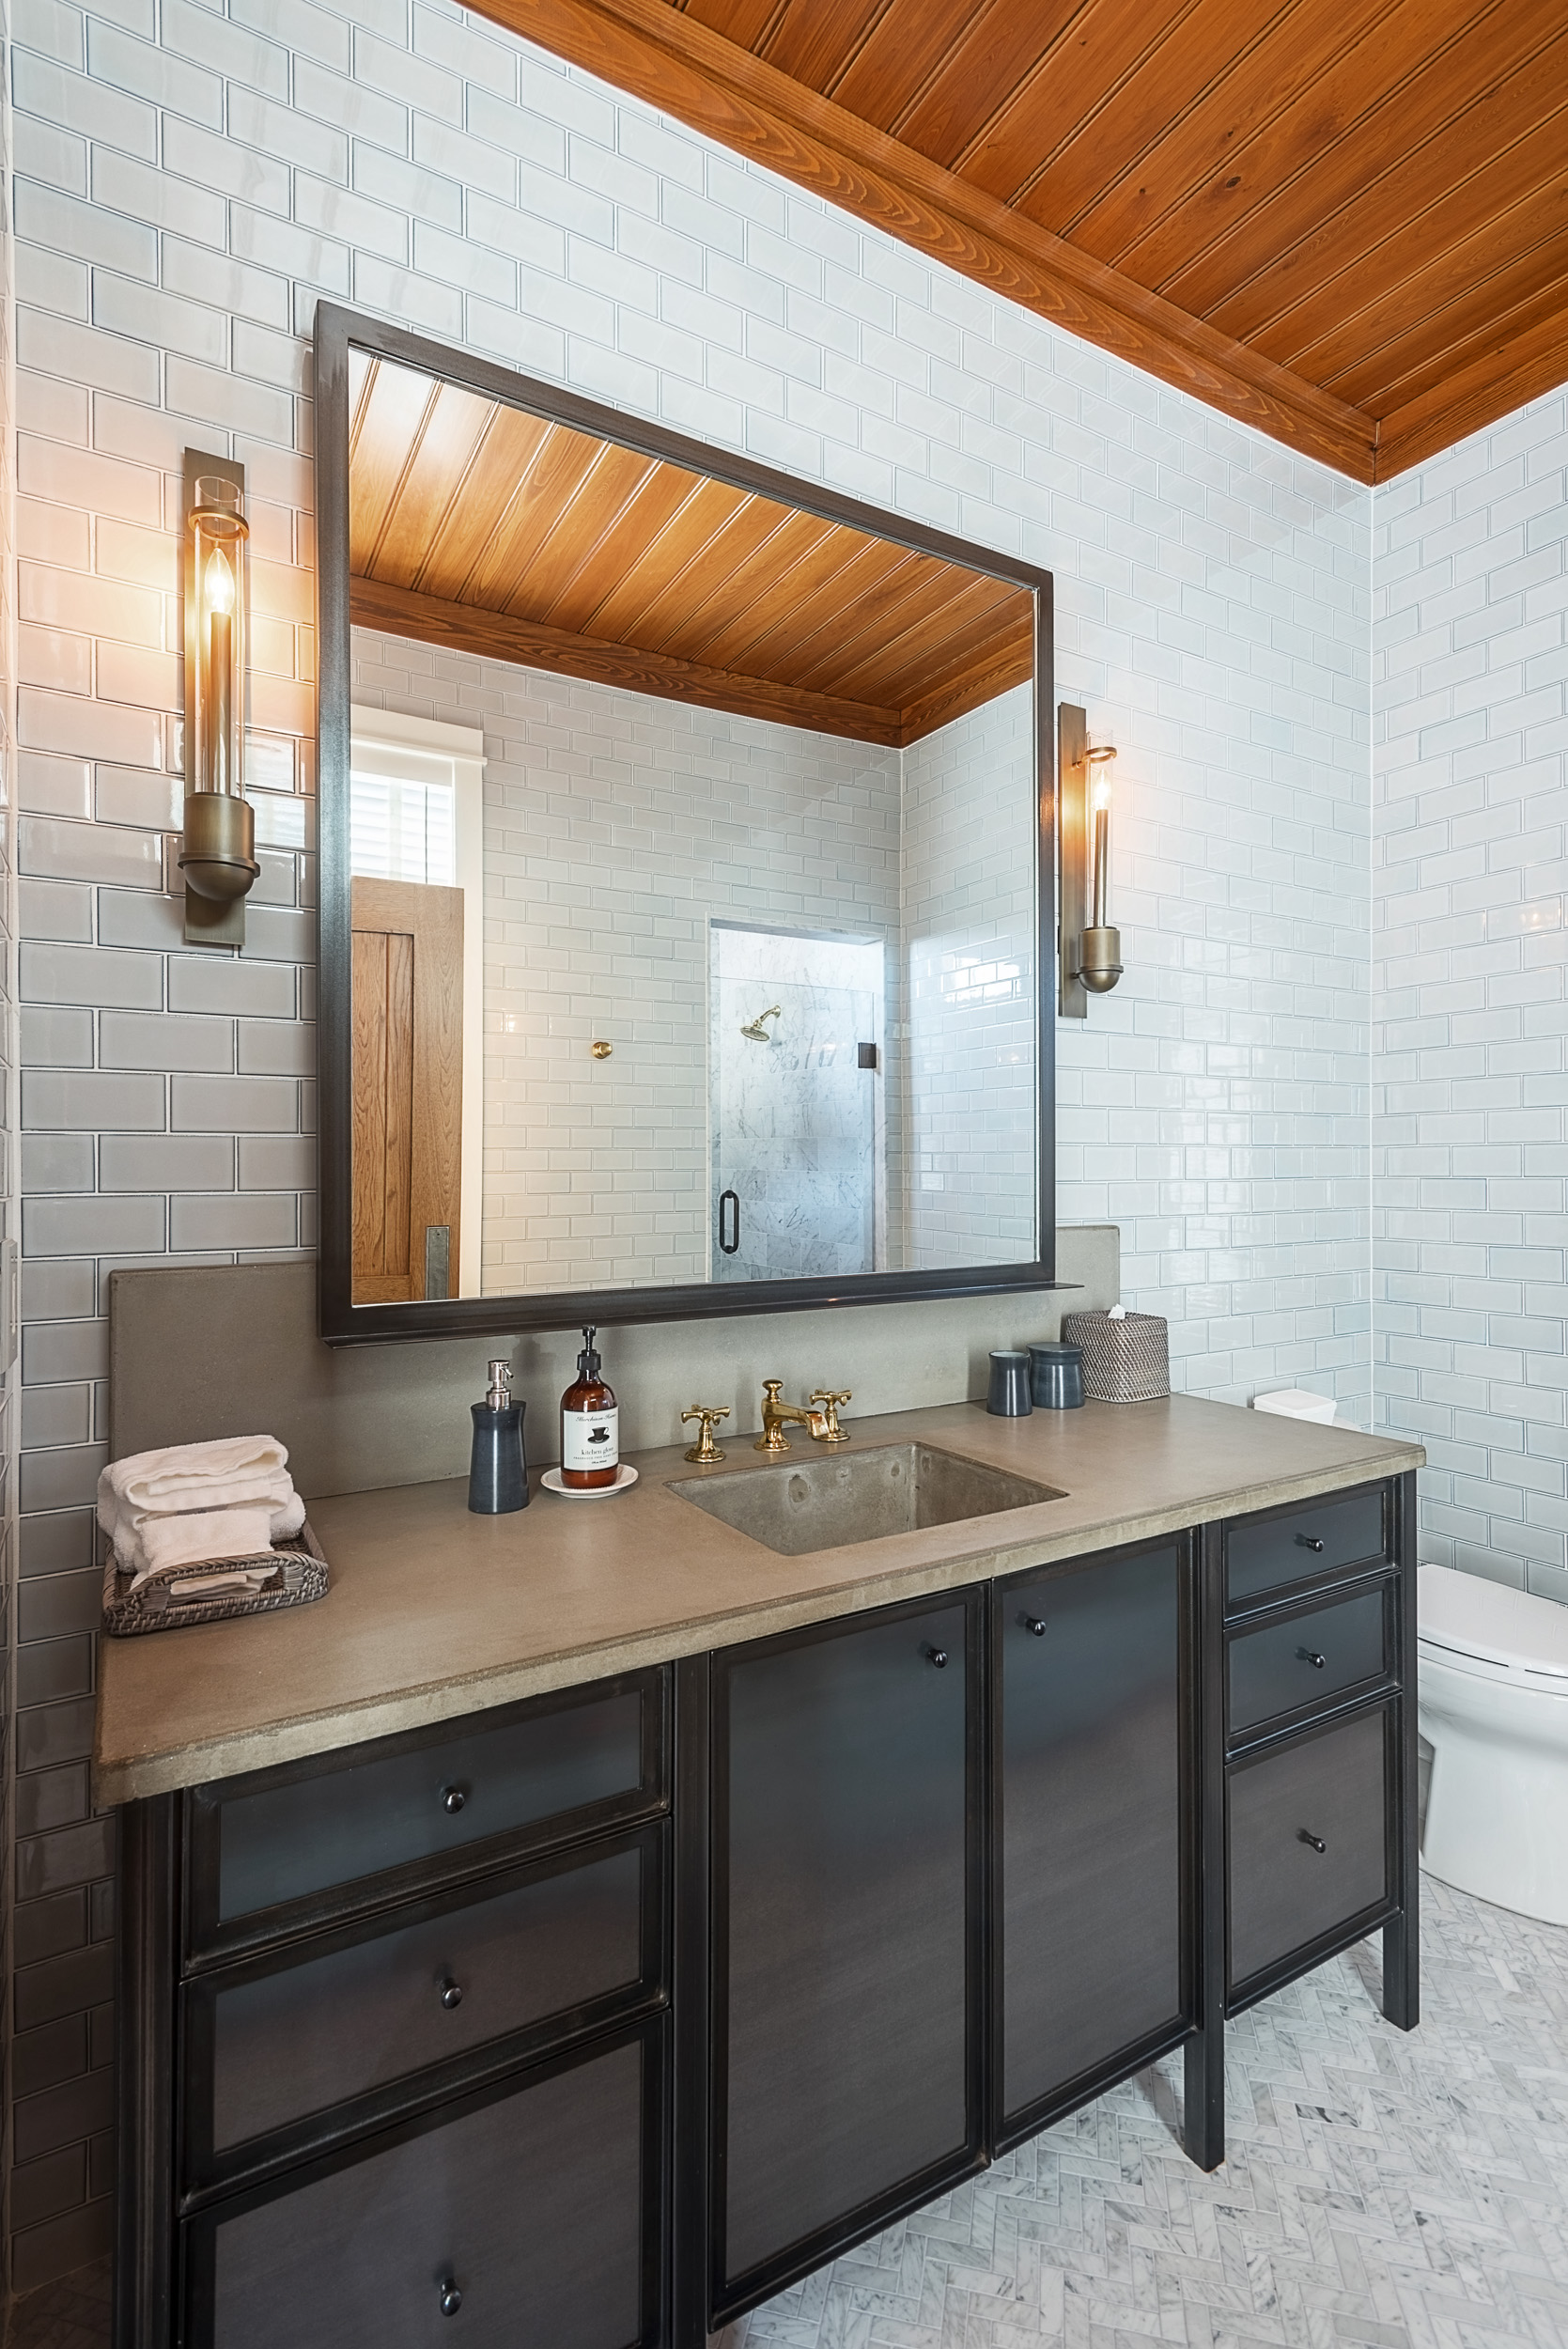 Interior photography of bathroom vanity, custom built with steel cabinetry fronts and concrete counter top.